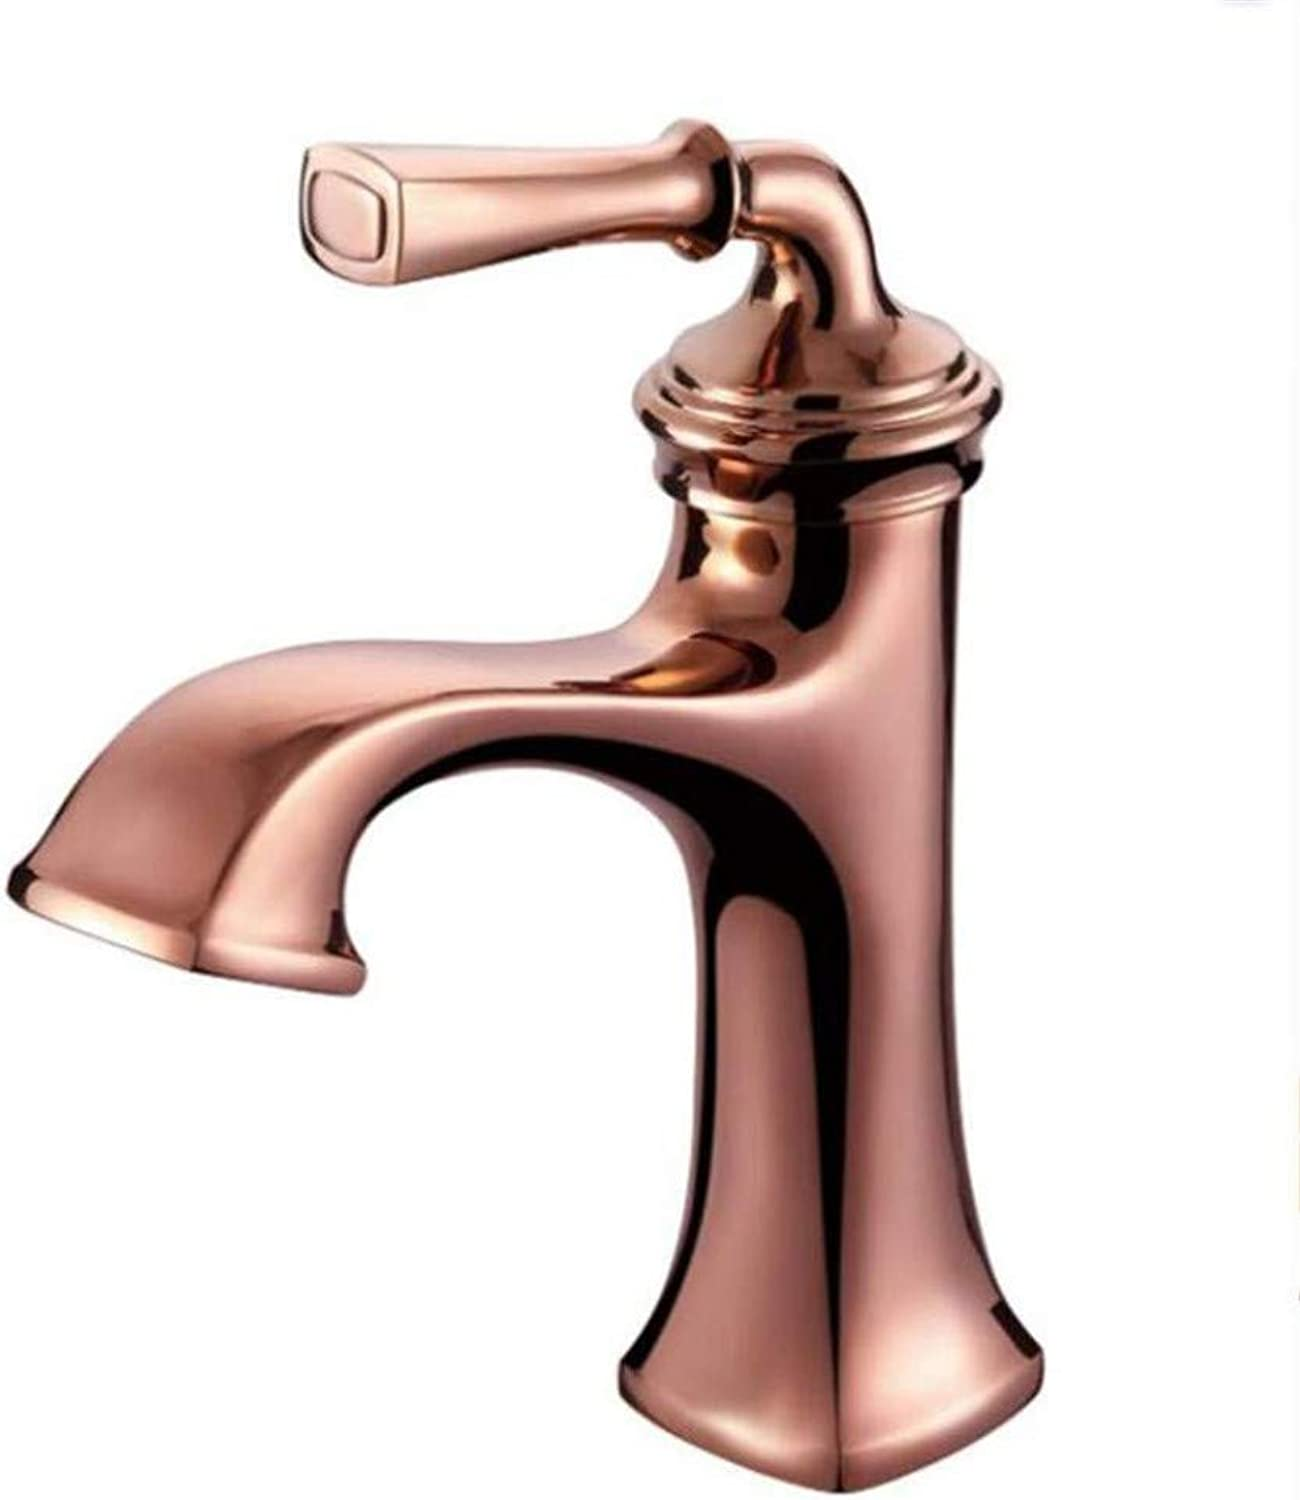 360° redating Faucet Retro Faucetpink gold Bathroom Basin Faucet Deck Mounted Single Handle Brass